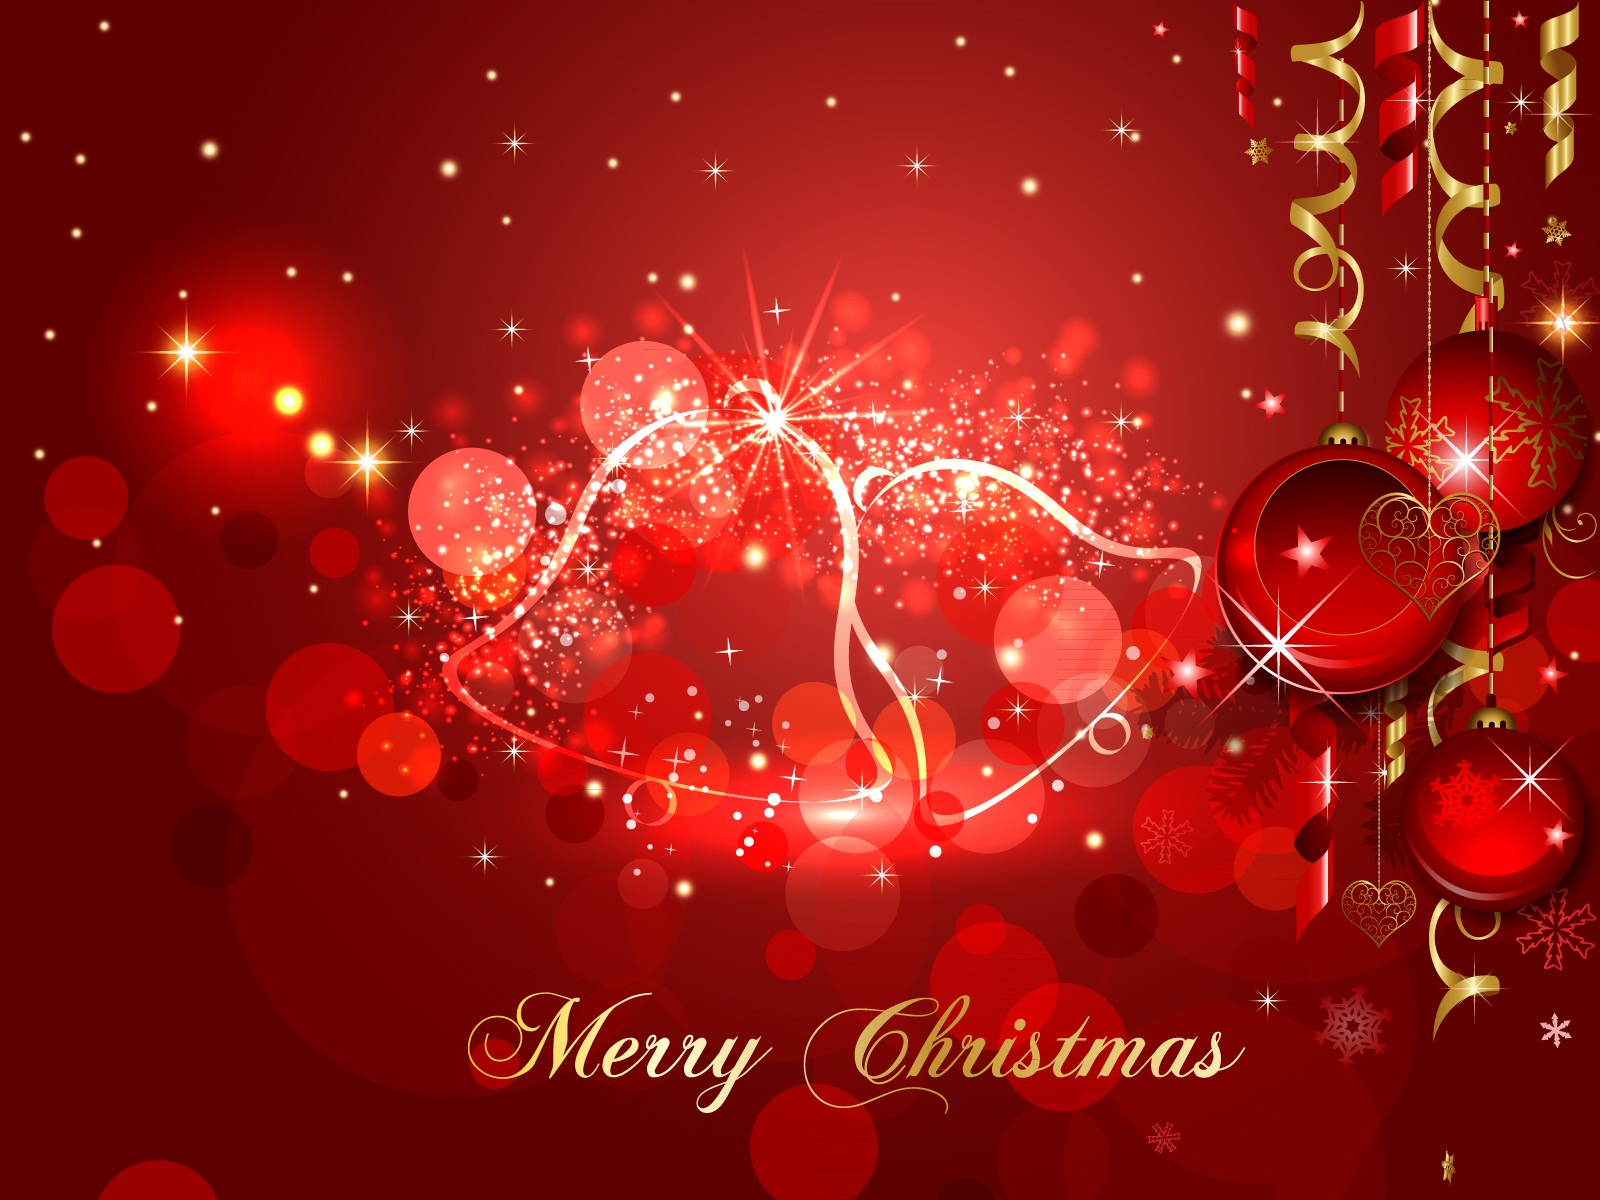 Merry Christmas Greeting Wishes Messages Merry Christmas Wishes